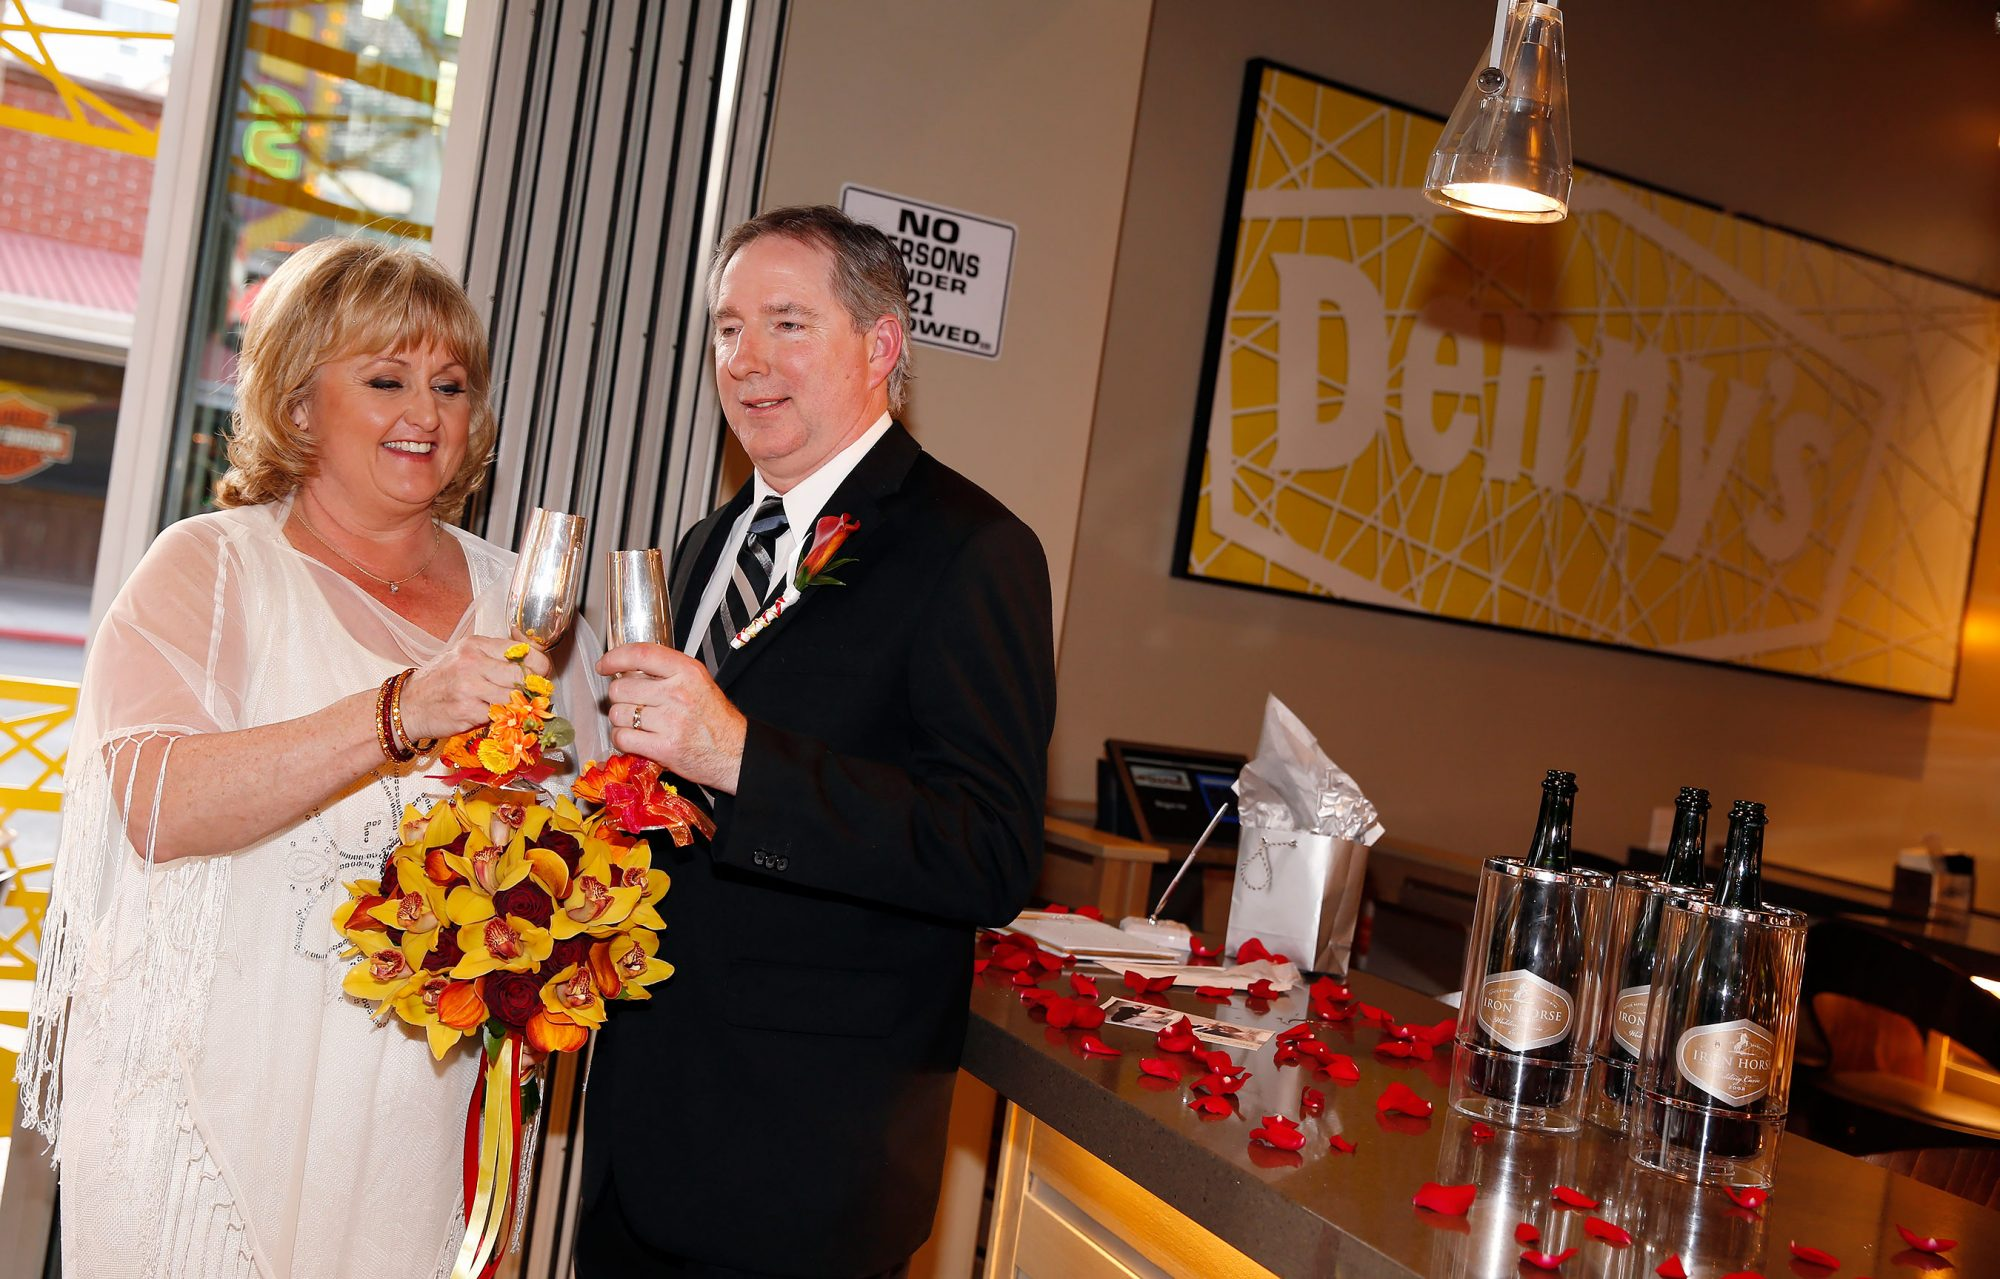 All the Fast Food Chains and Grocery Stores Where Couples Have Said 'I Do'